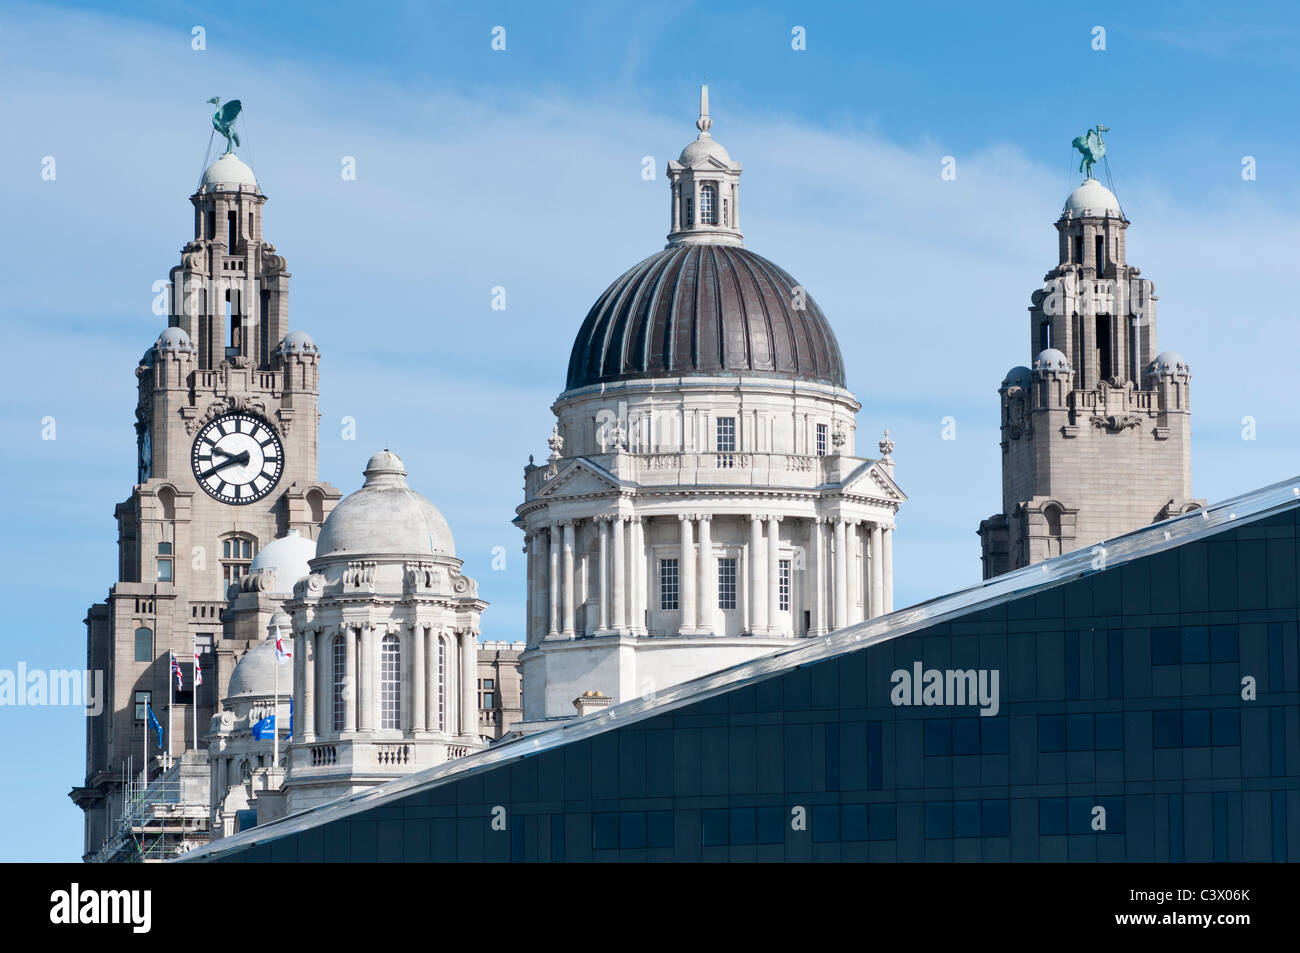 The Royal Liver and Port of Liverpool Buildings contrasting with new Mann Island development, Liverpool, England. - Stock Image